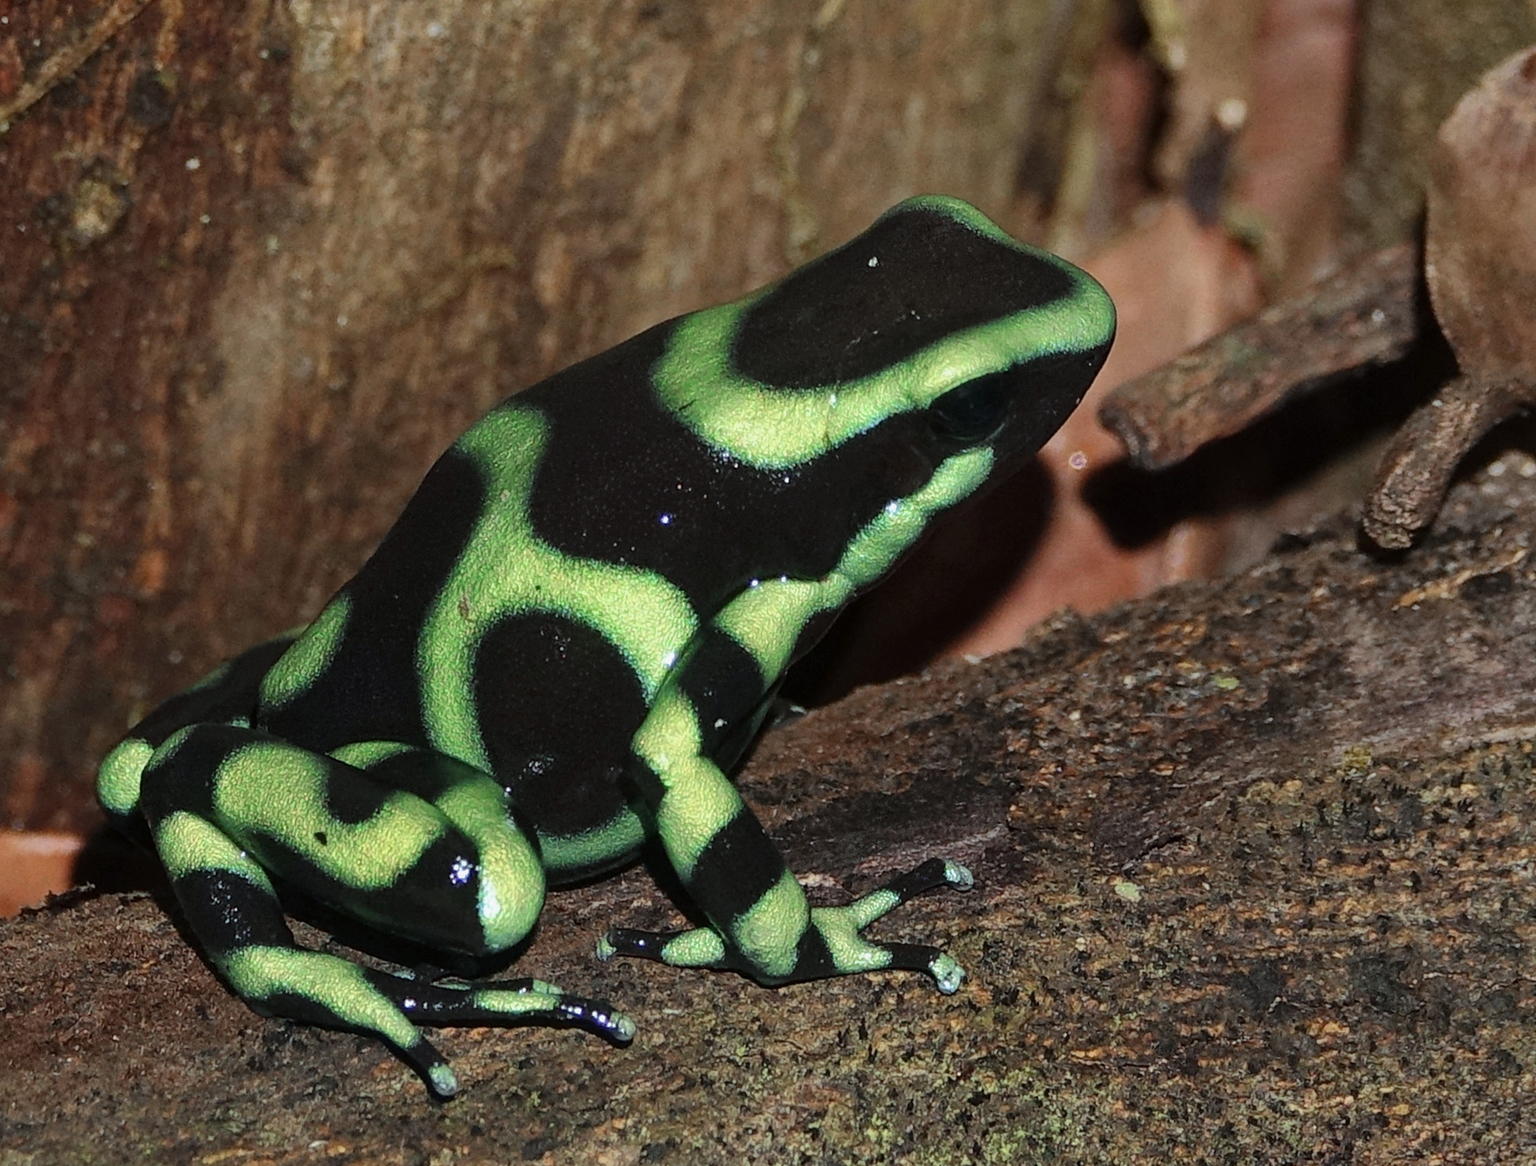 GREEN-AND-BLACK POISON DART FROG ( Dendrobates auratus ), Costa Rica, 2019